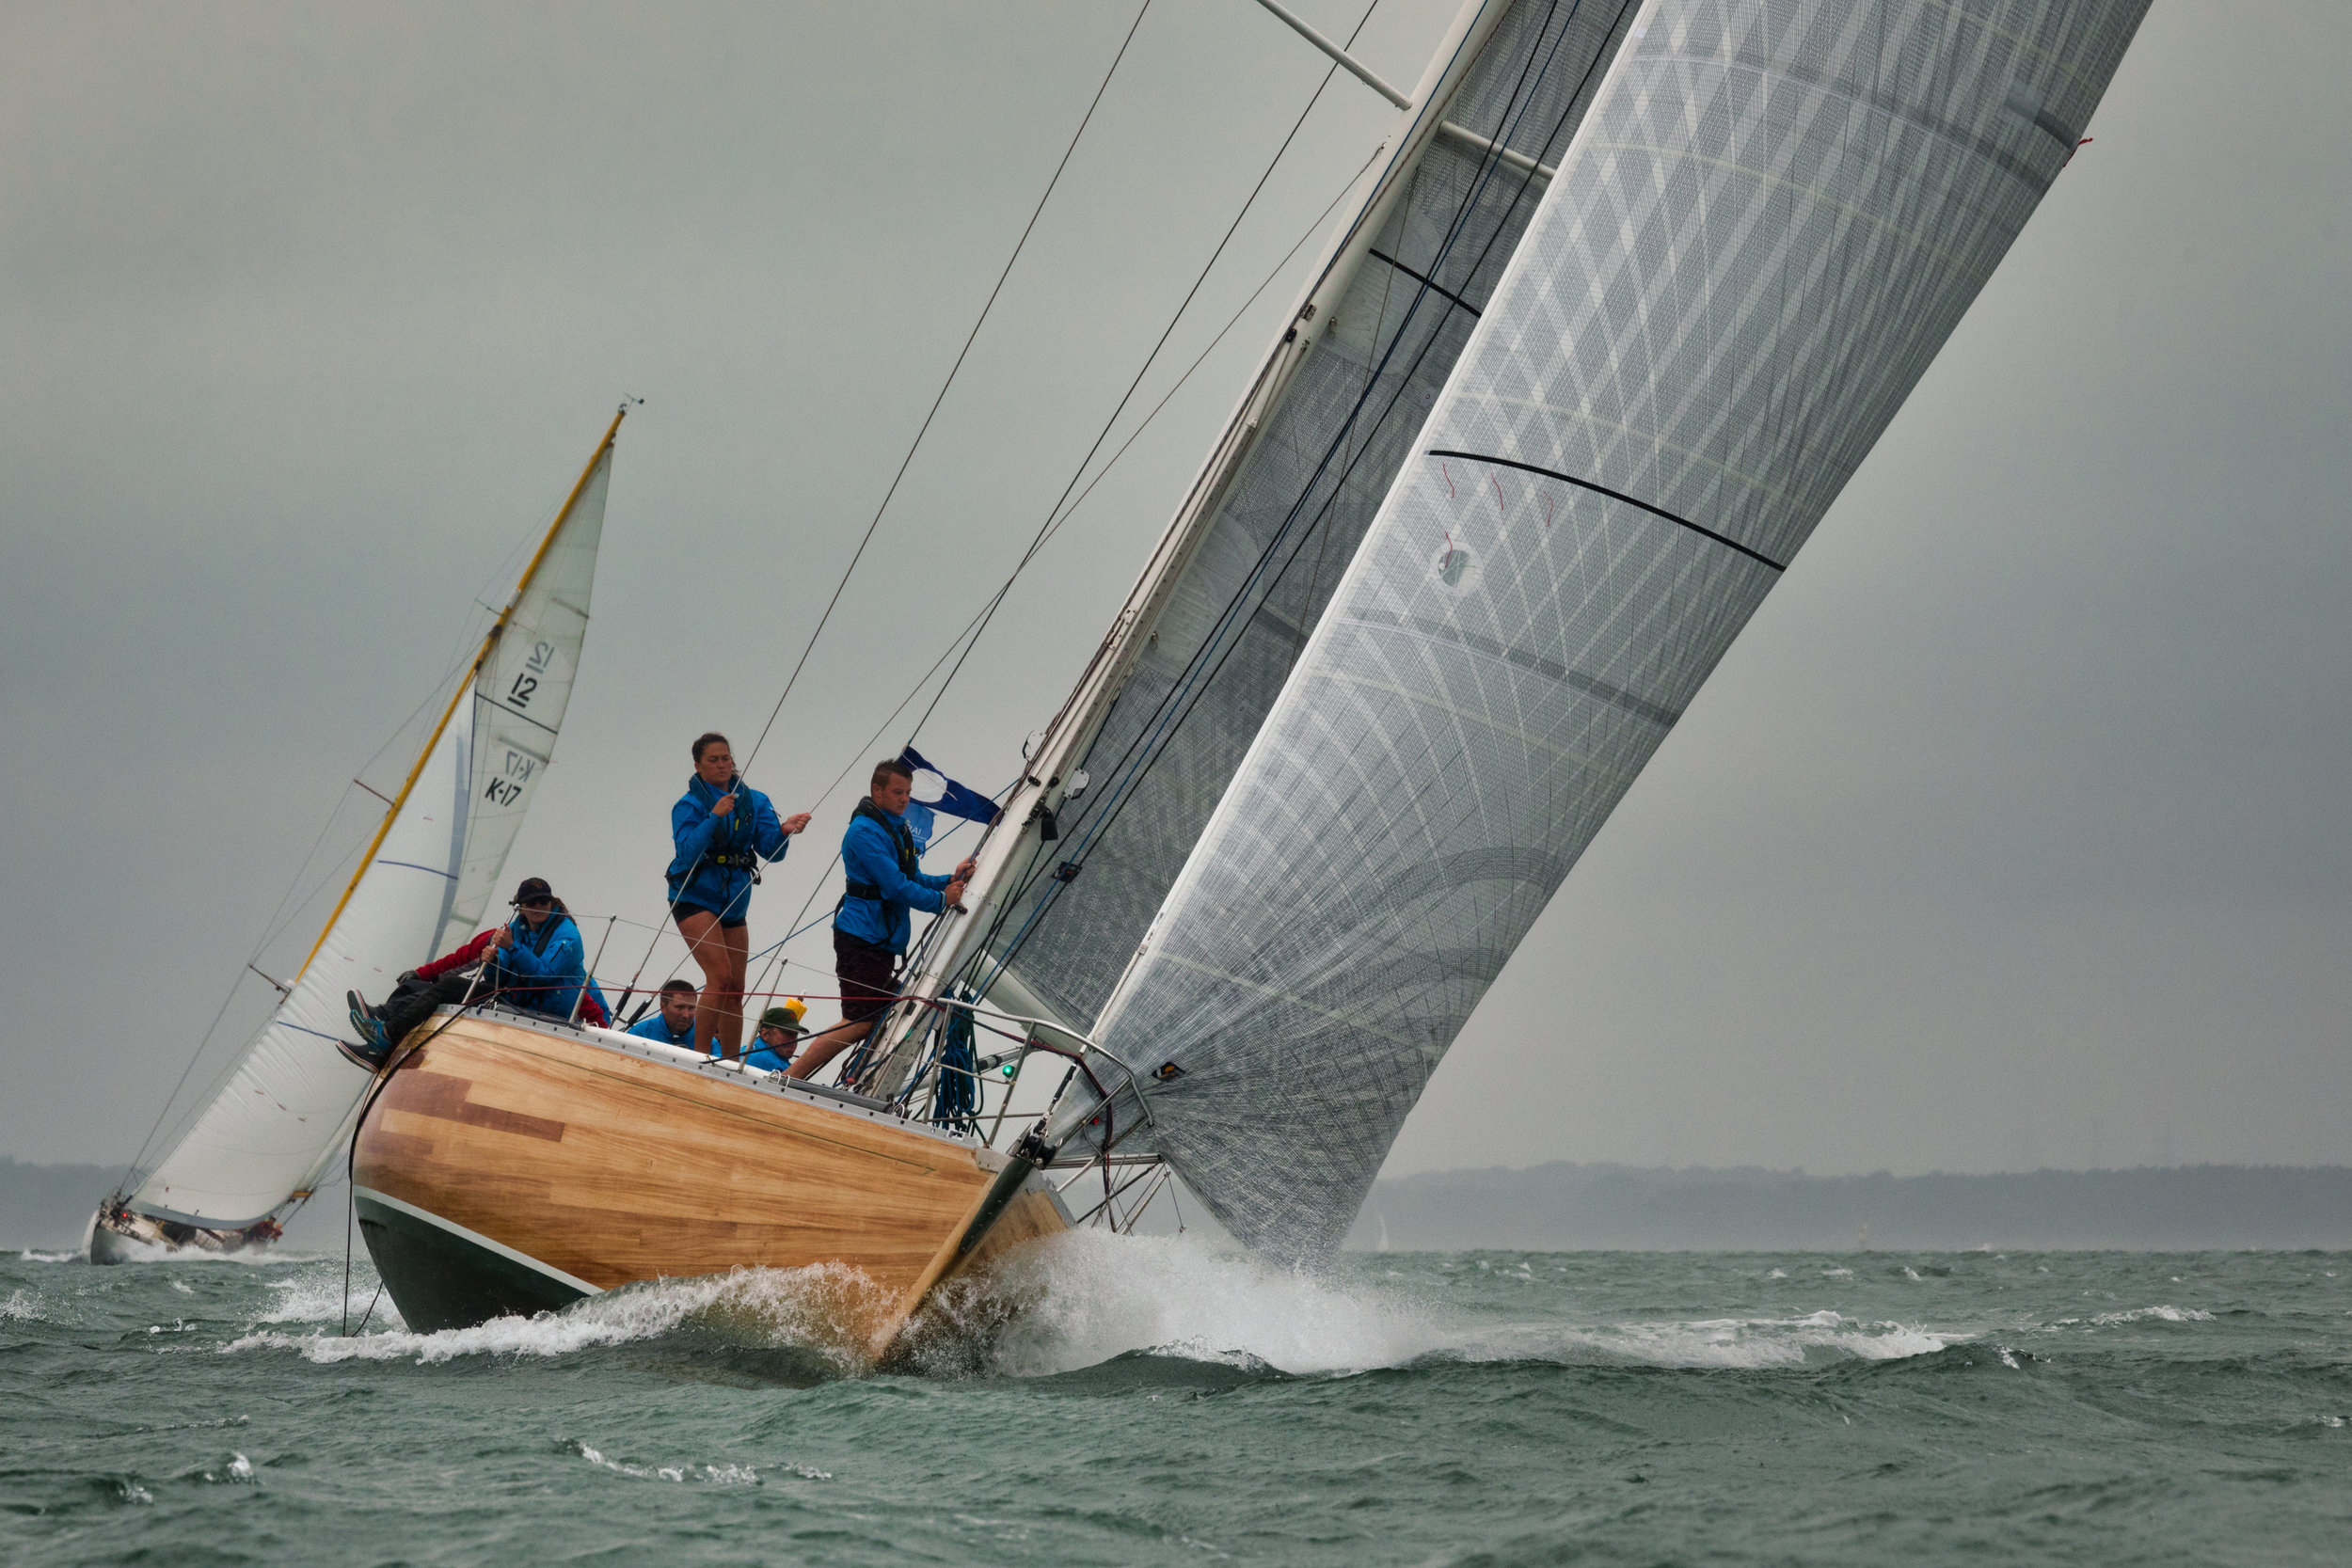 Tough conditions tested the fleet